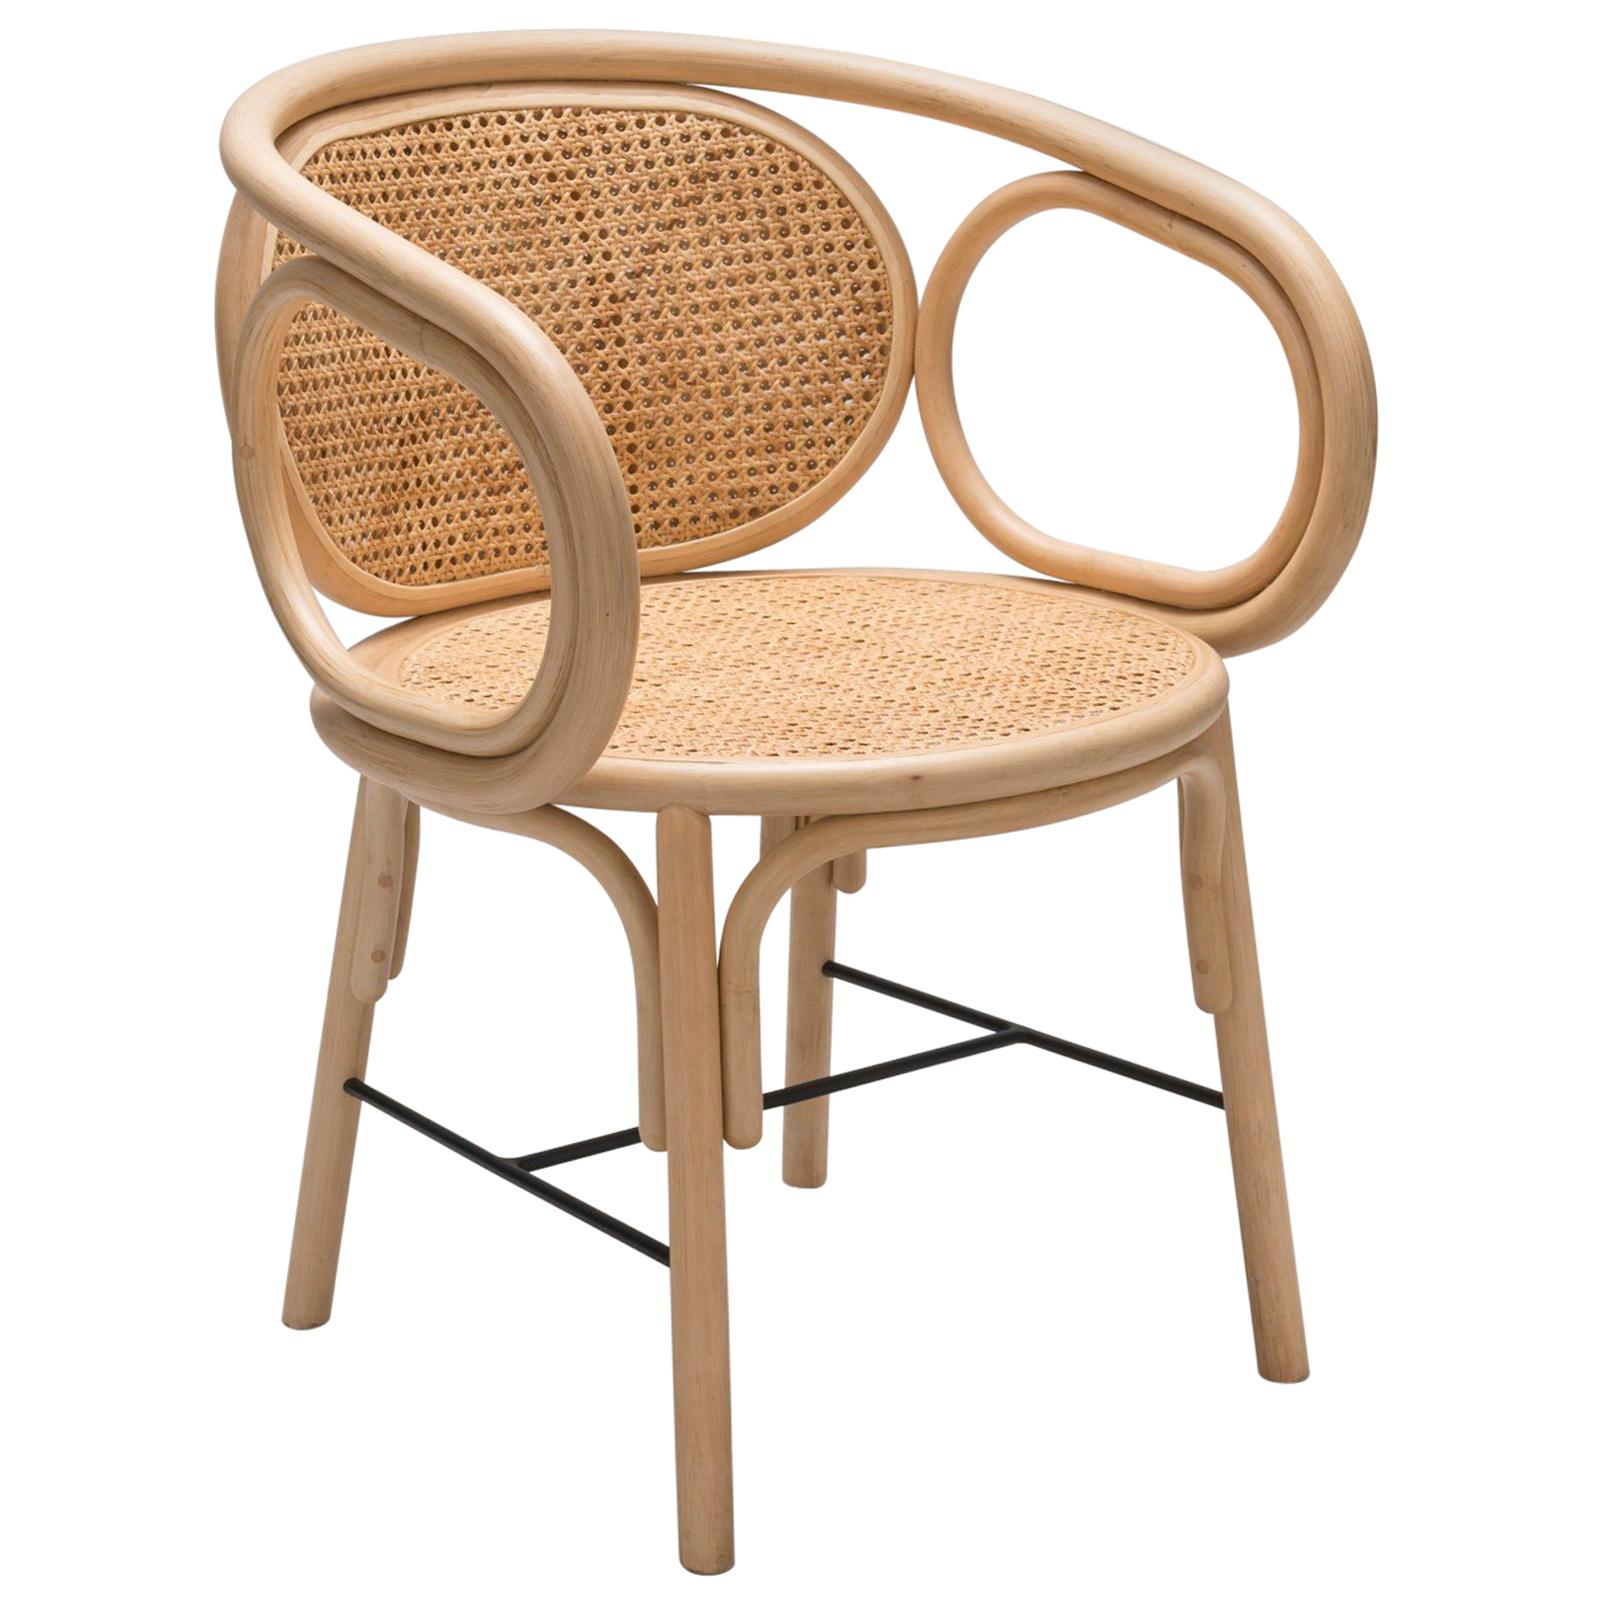 Incroyable O Dining Chair Set, Contemporary Rattan Dining Or Desk Chair In Cane  Sturcture